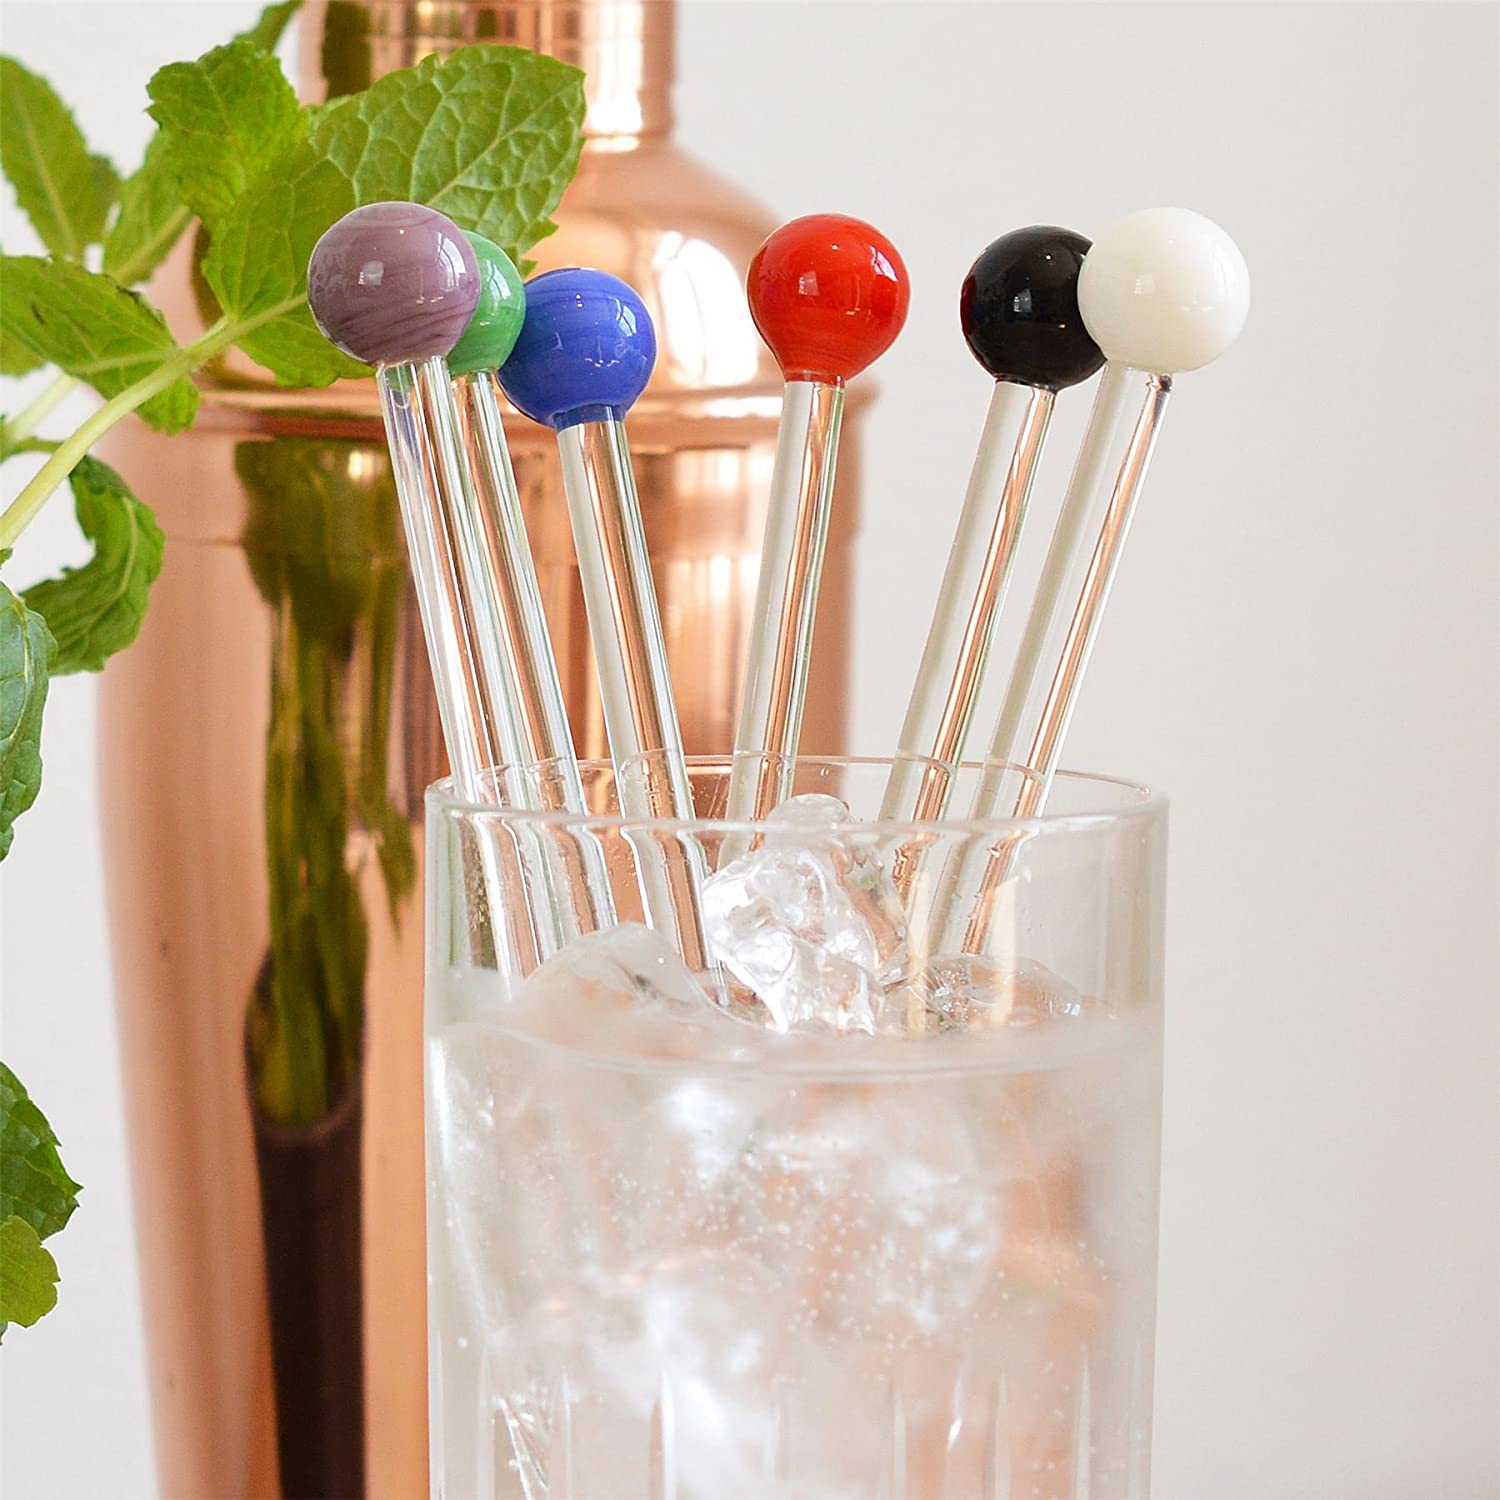 Rink Drink Gin Cocktail Glass Swizzle Sticks Pack Of 6 Multi Coloured Stirrers